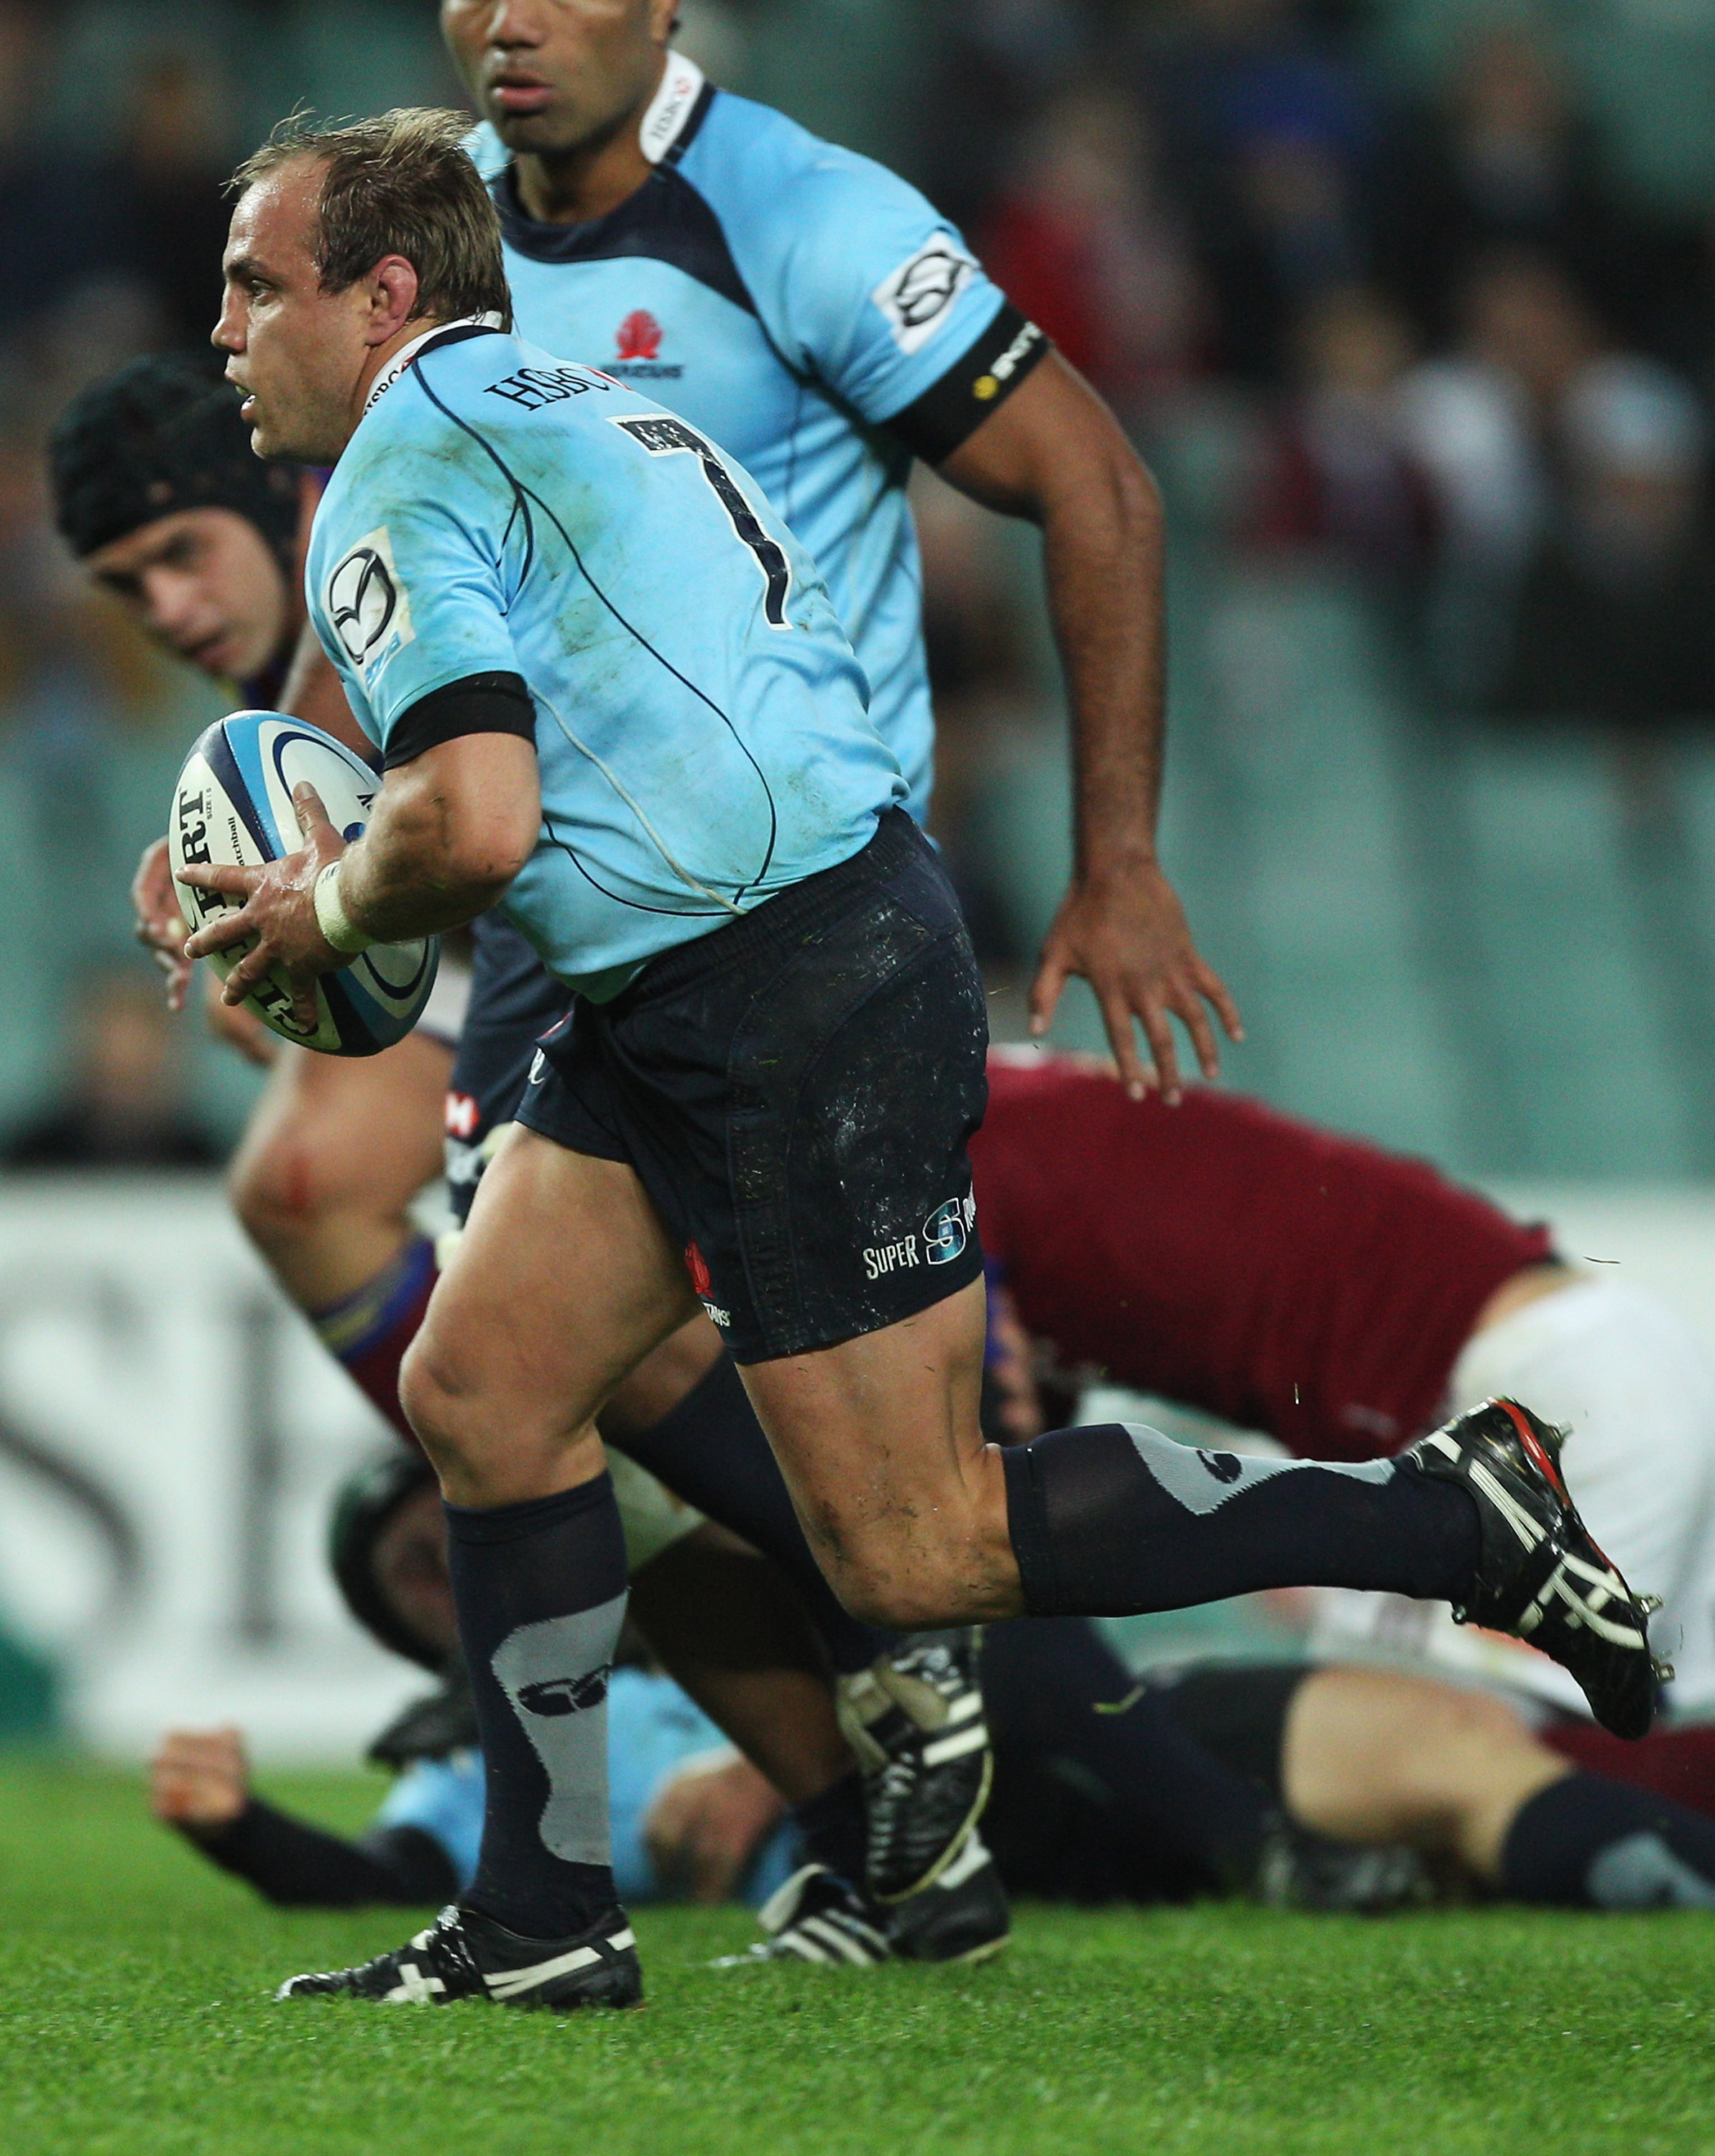 SYDNEY, AUSTRALIA - JUNE 11:  Phil Waugh of the Waratahs runs the ball during the round 17 Super Rugby match between the Waratahs and the Highlanders at the Sydney Football Stadium on June 11, 2011 in Sydney, Australia.  (Photo by Mark Kolbe/Getty Images)